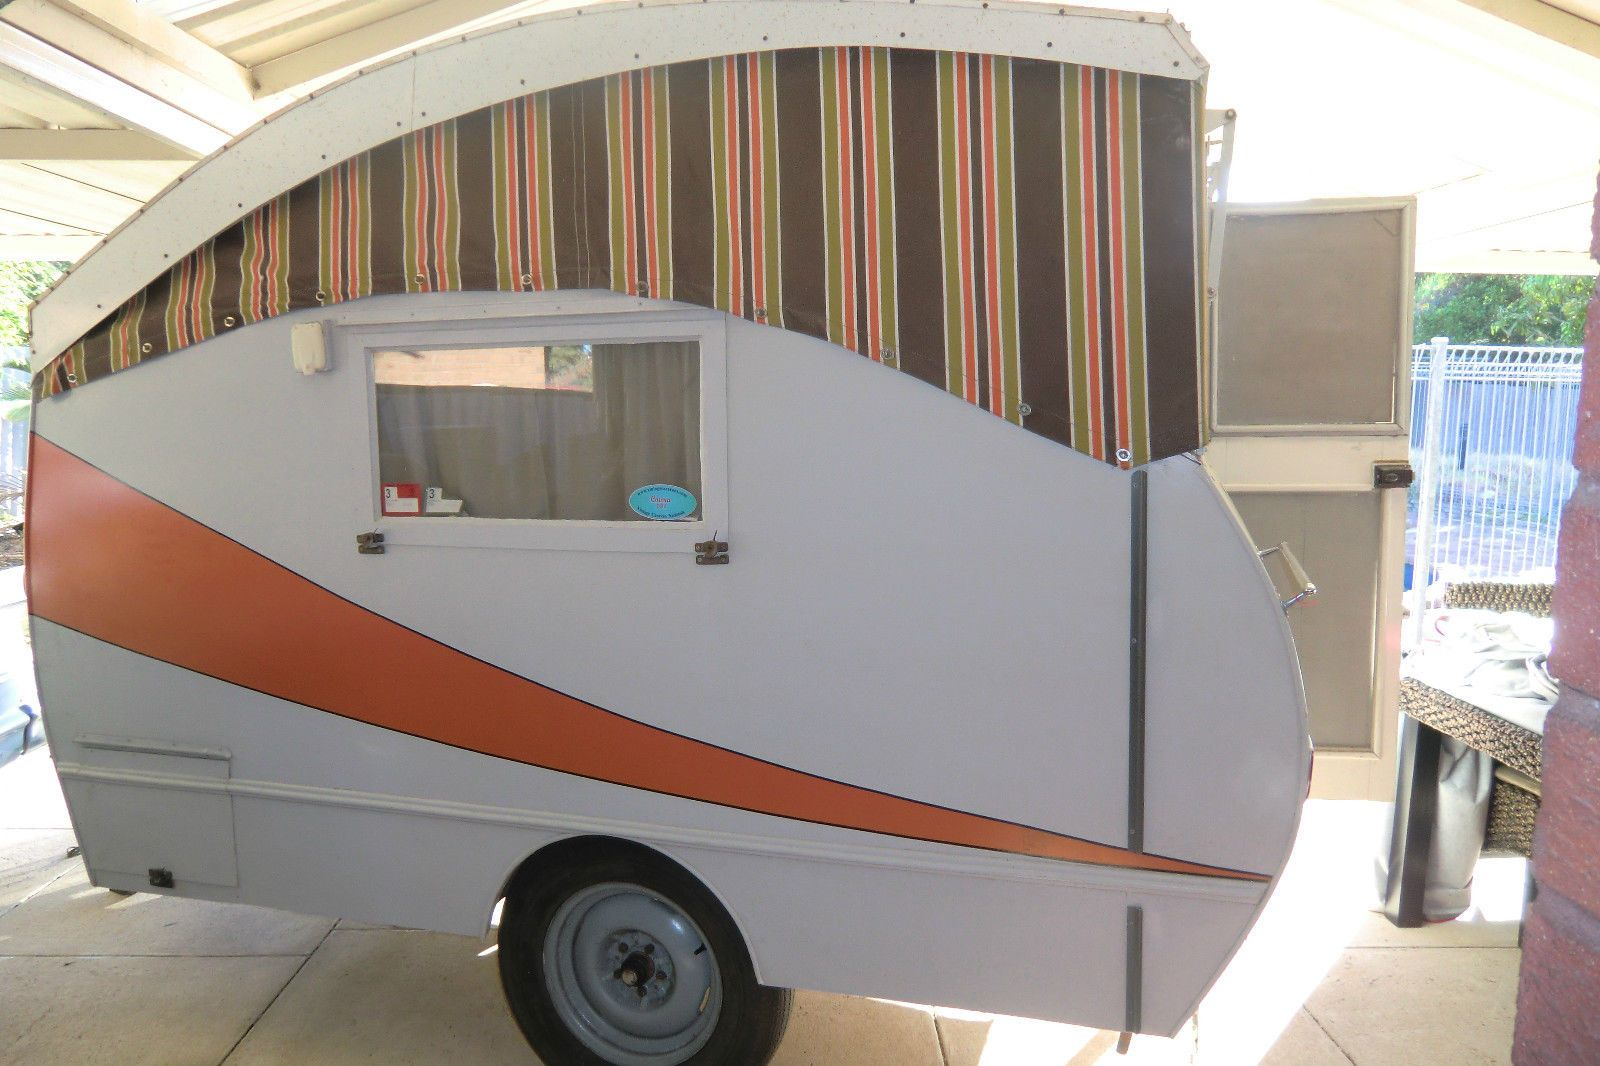 Innovative  Towing  Vintage Airstreams  Airstream Caravans To Rent And For Sale